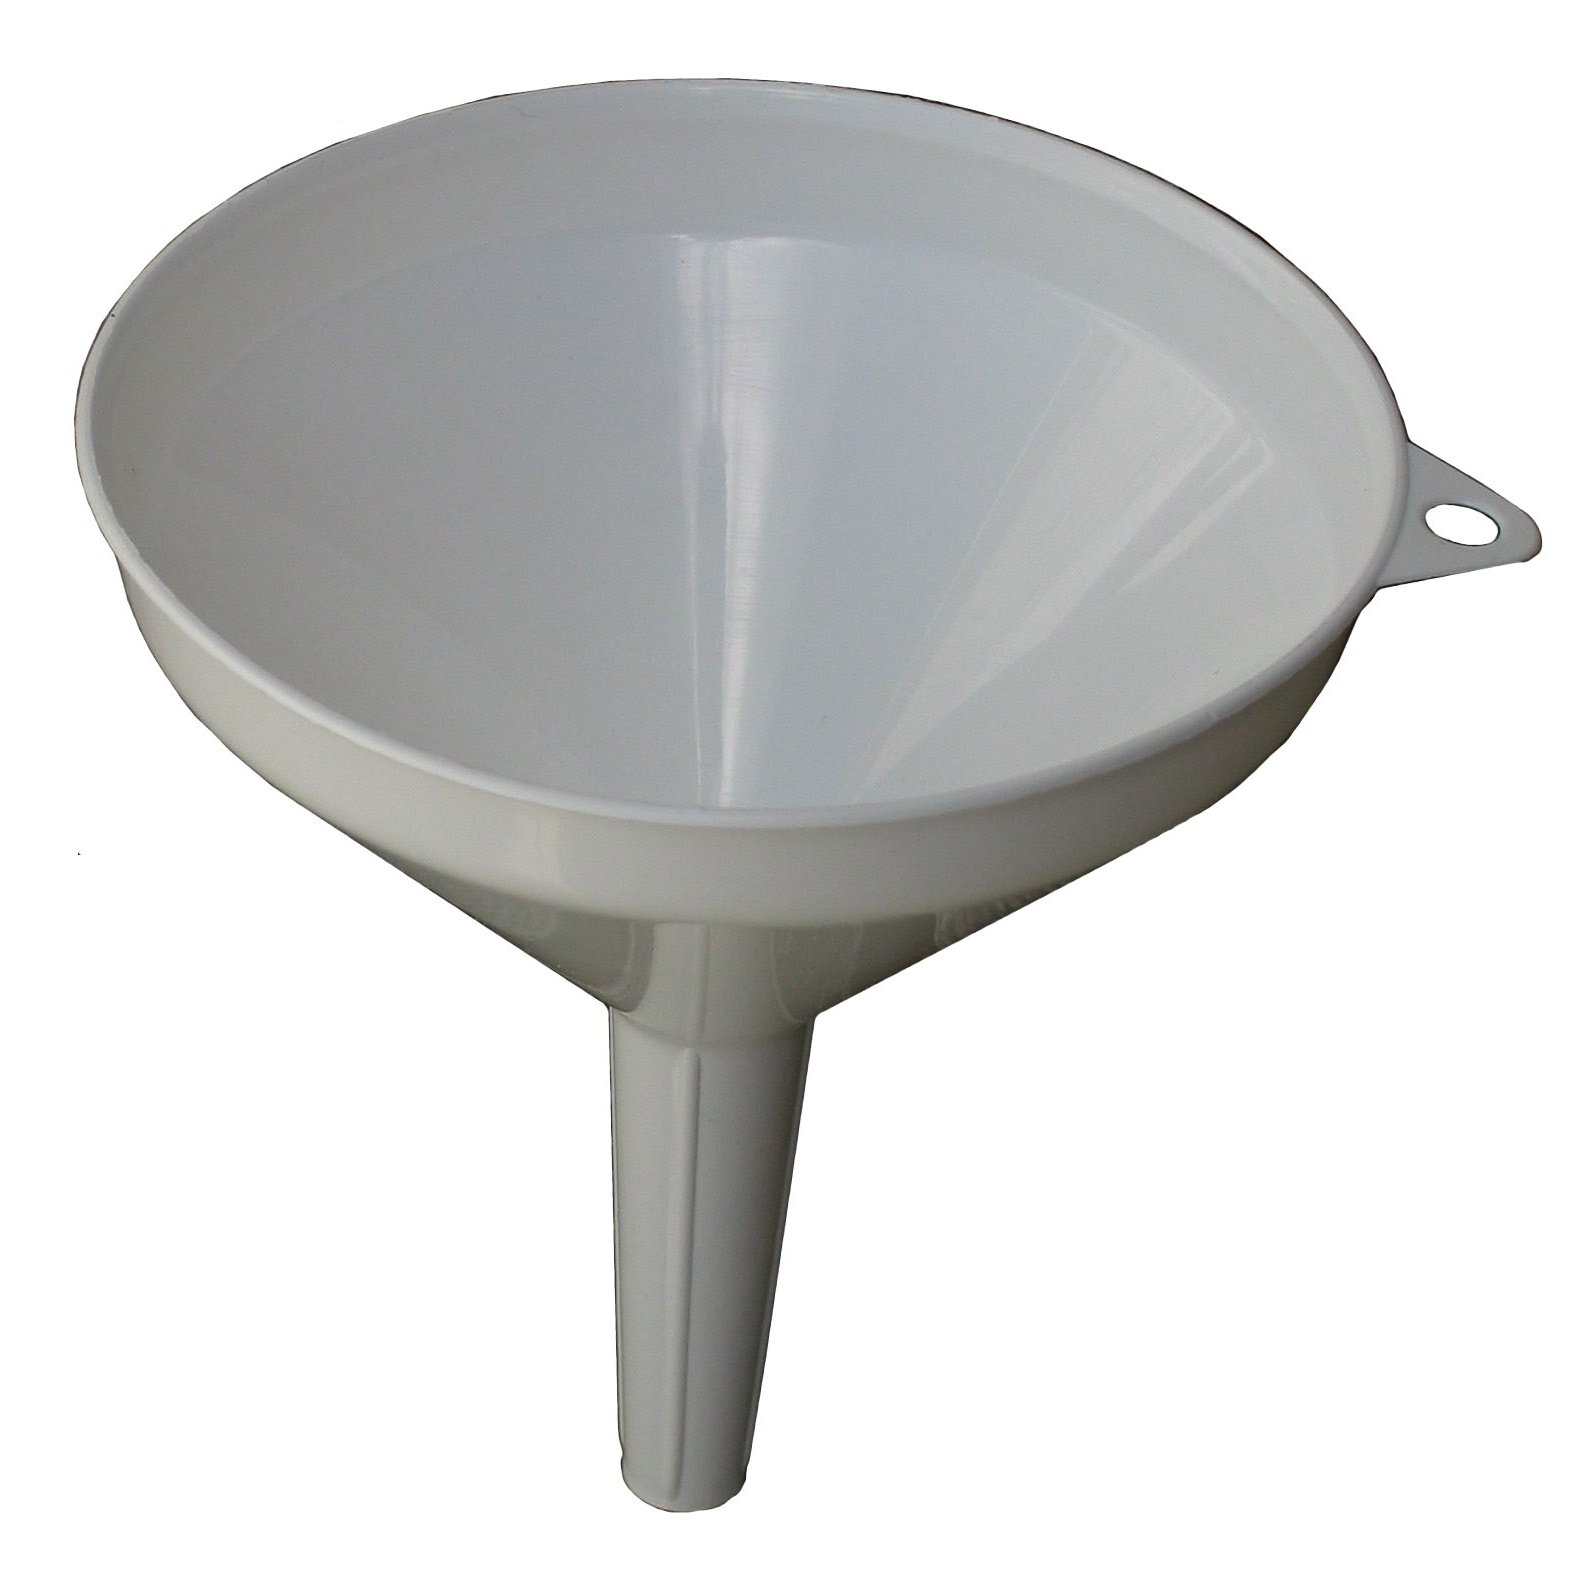 Funnel - Wikipedia, the free encyclopedia